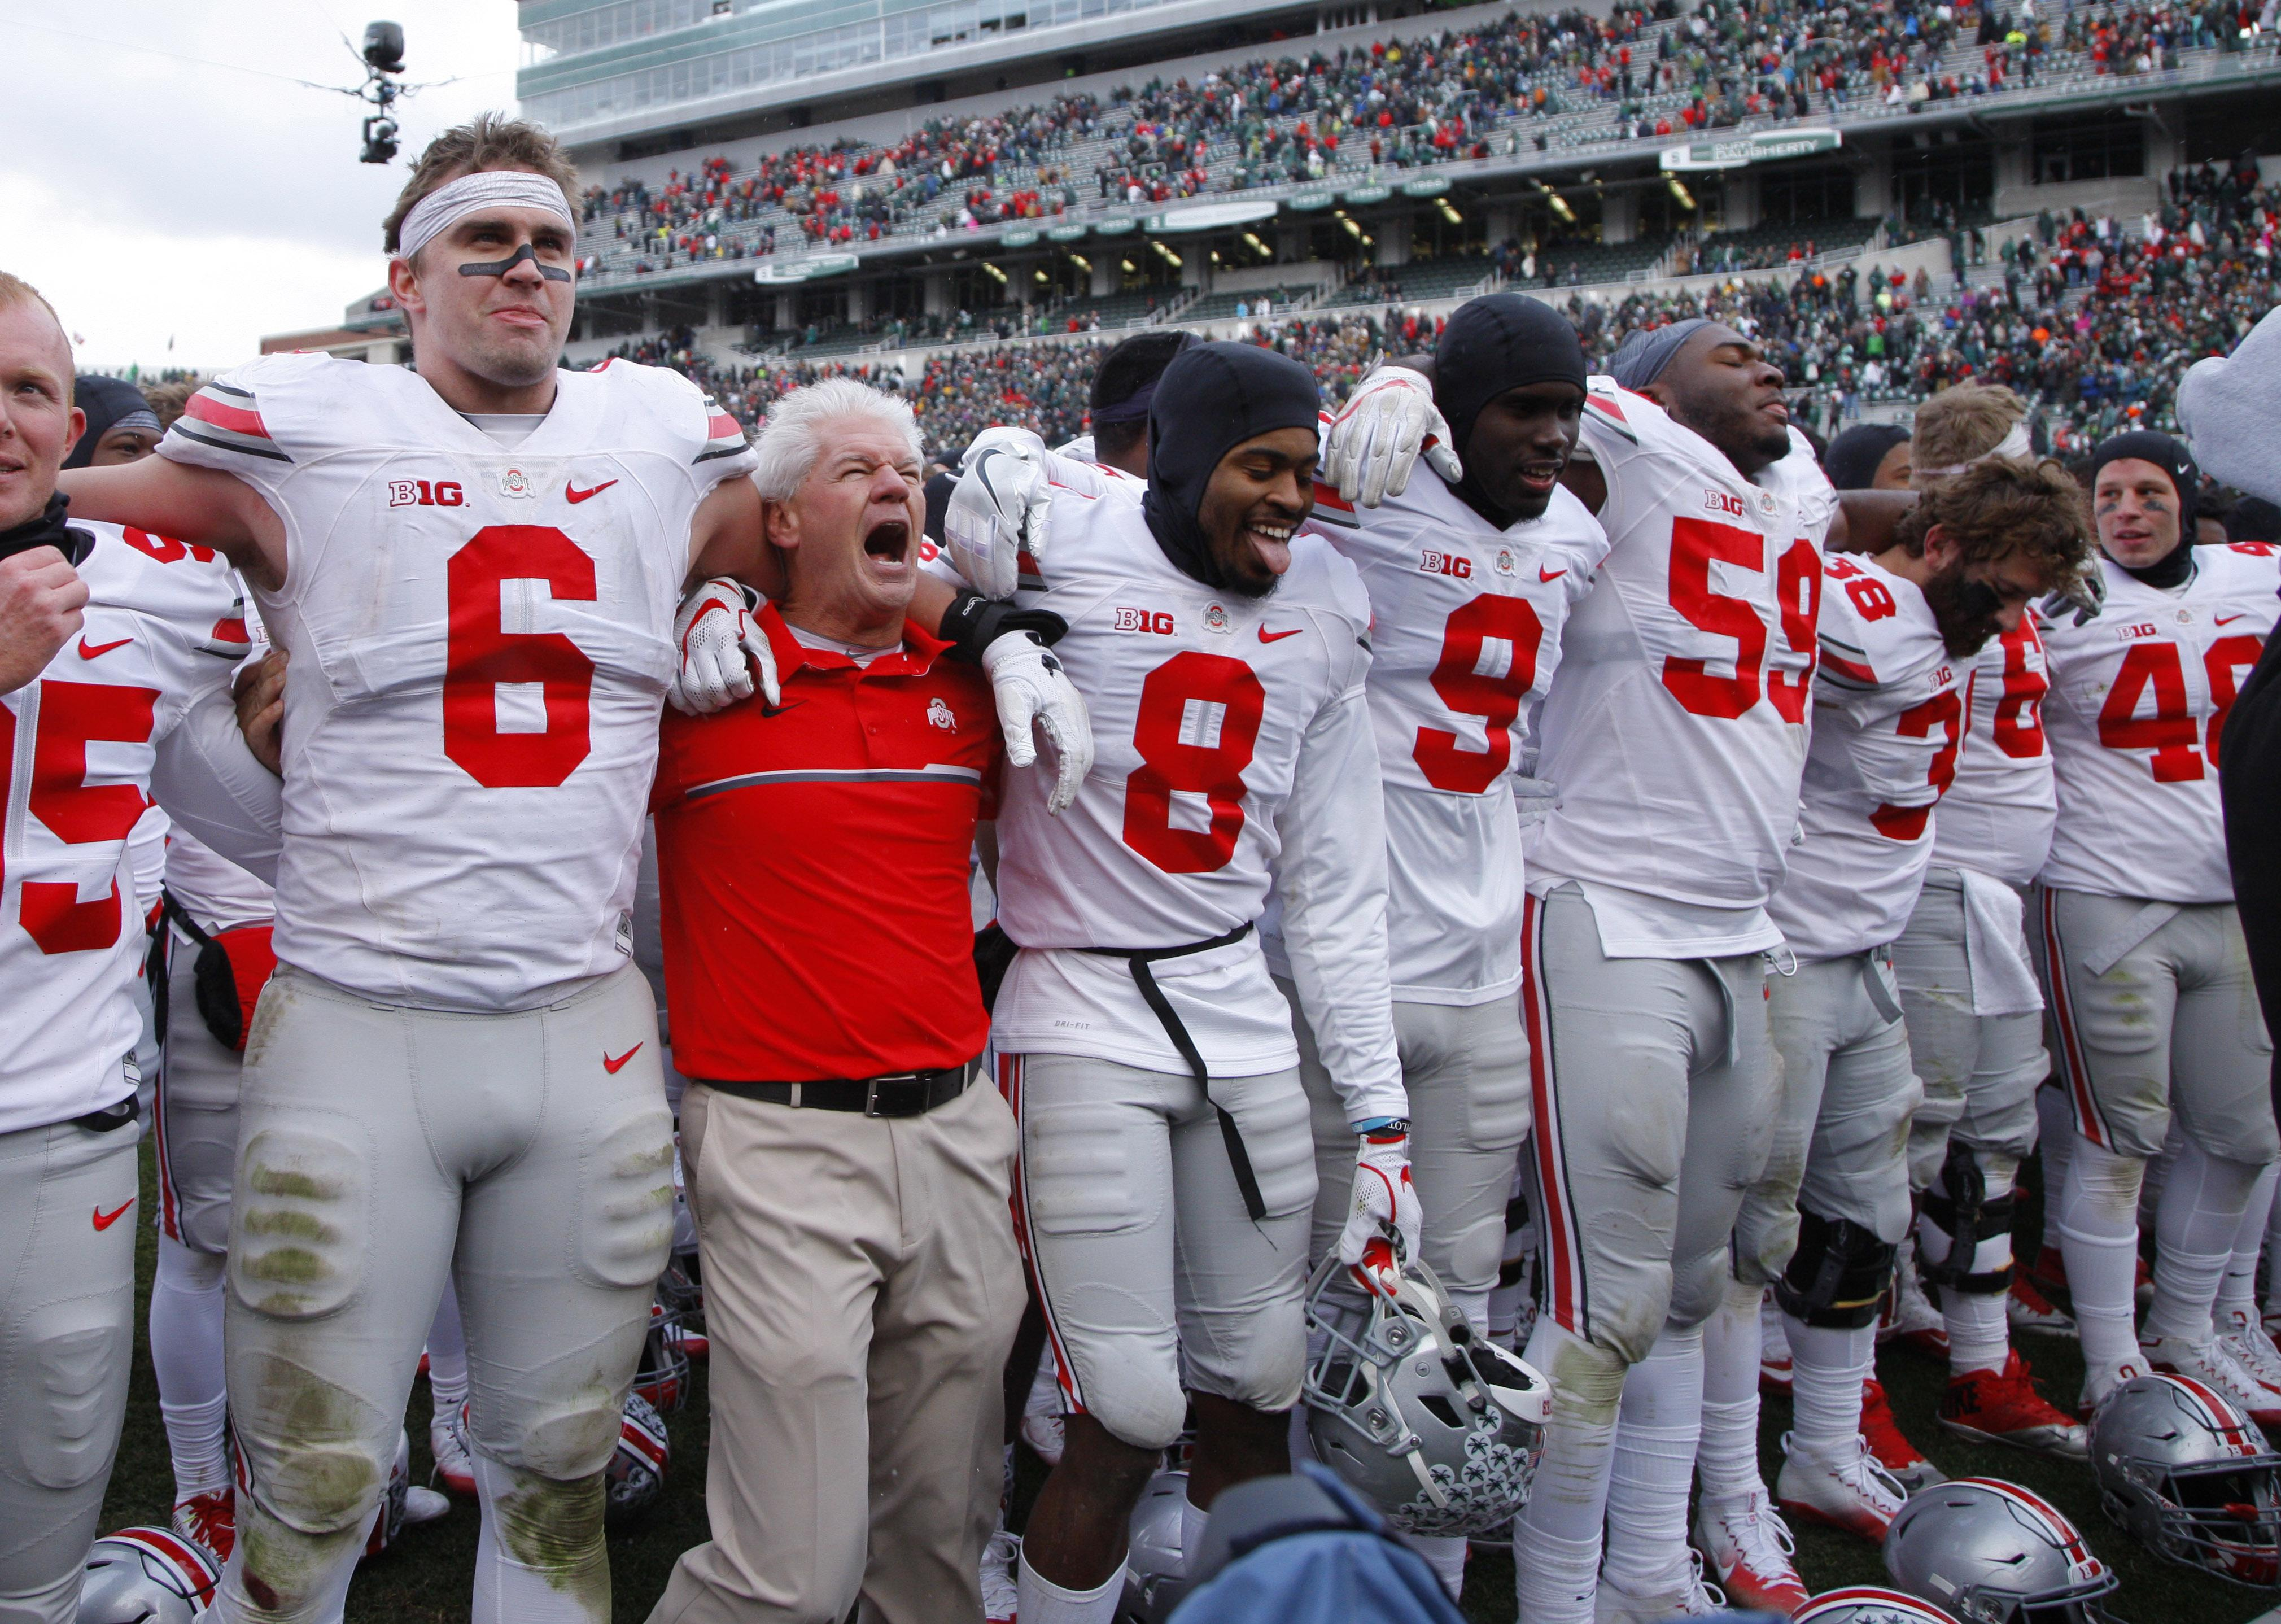 Latest Playoff Rankings Look Promising For Ohio State The